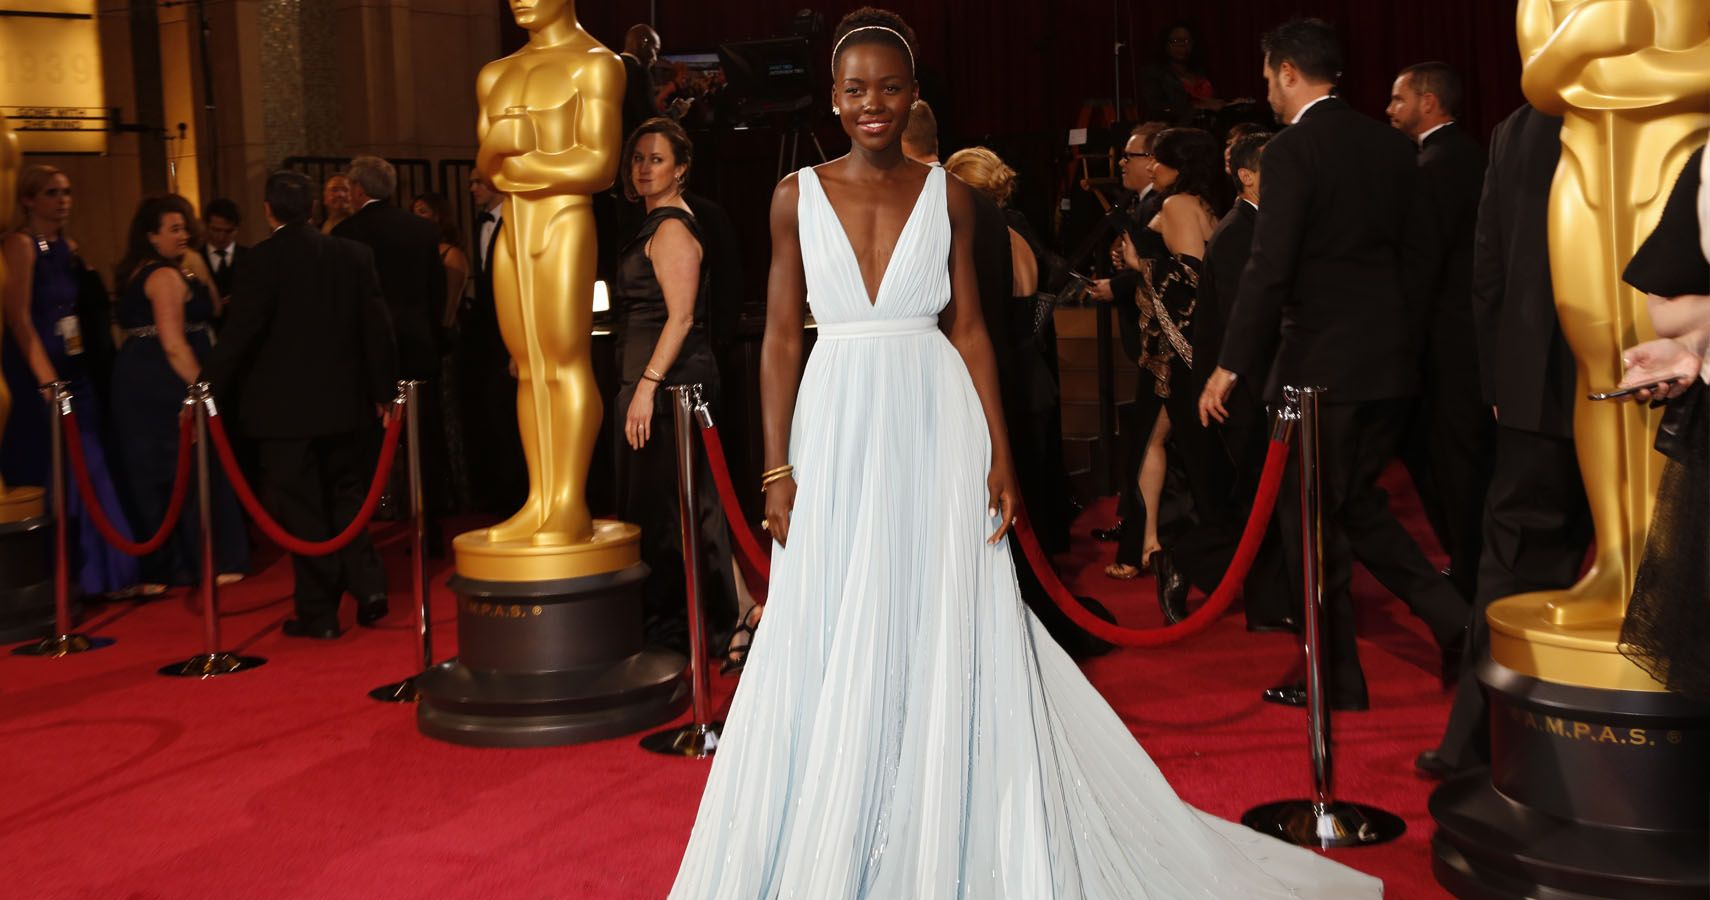 Prêt-à-Porter: 8 of the Most Expensive Red Carpet Looks